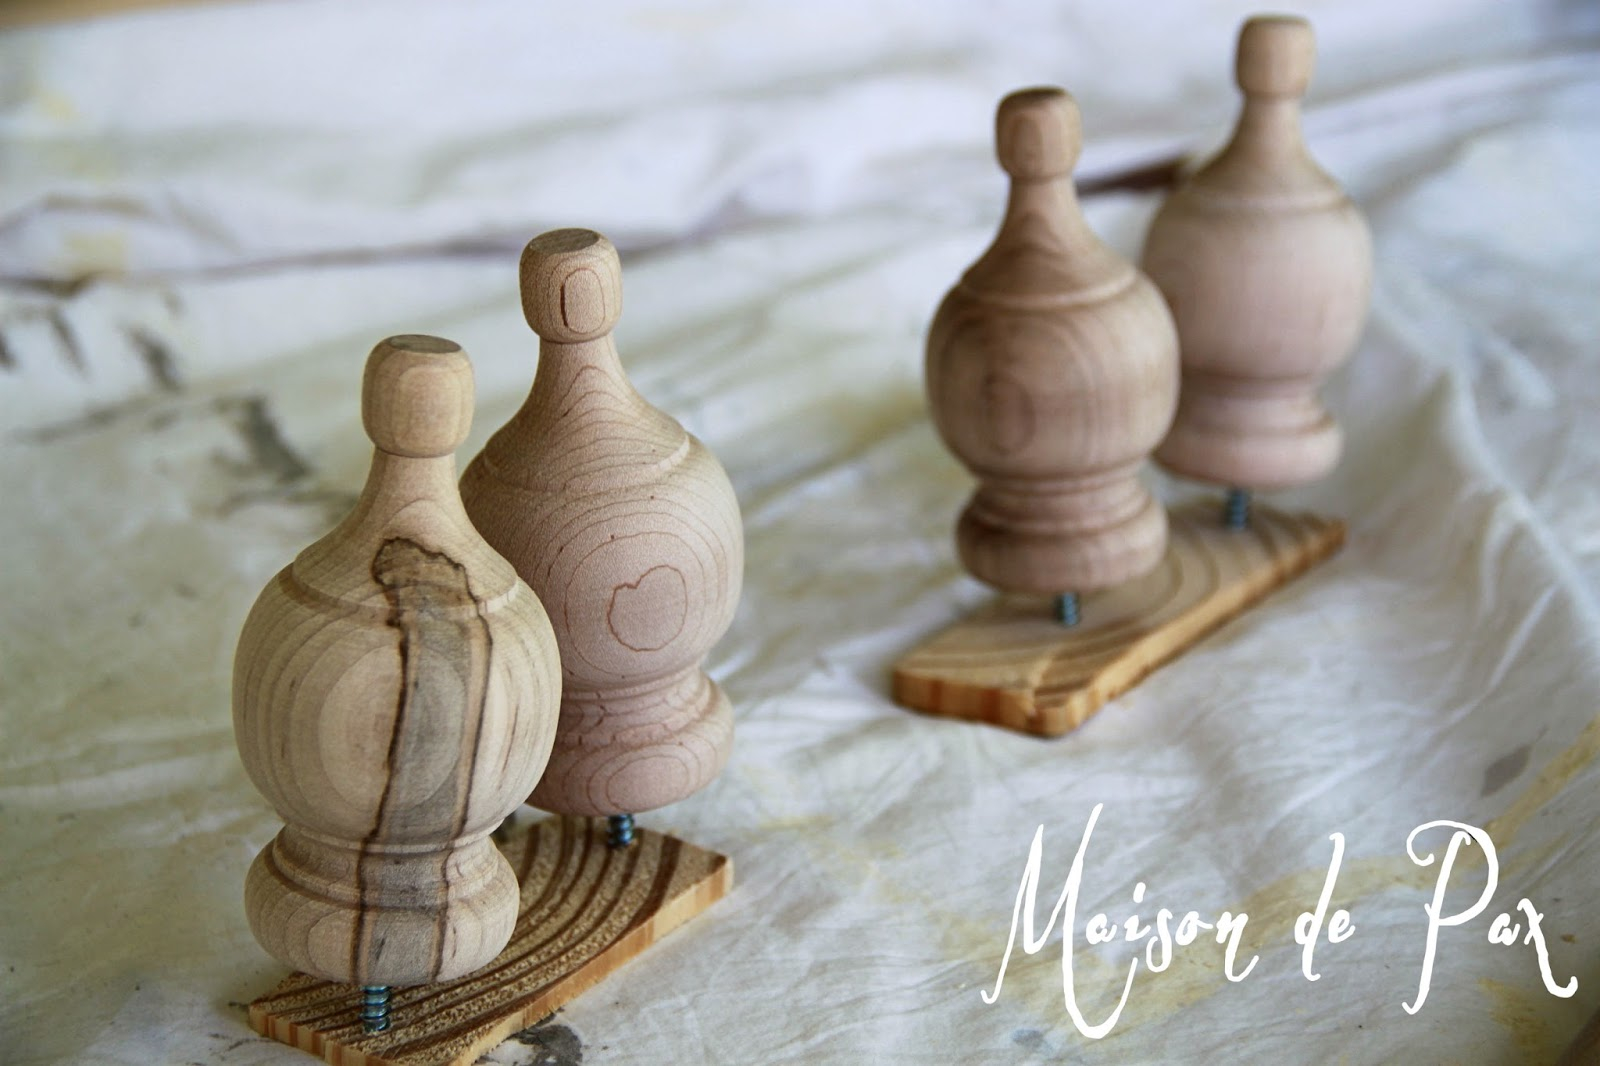 Wood finials for crafts - Wooden Knobs For Crafts Wooden Finials For Crafts Tip Screw Knobs Or Finials Into Scrap